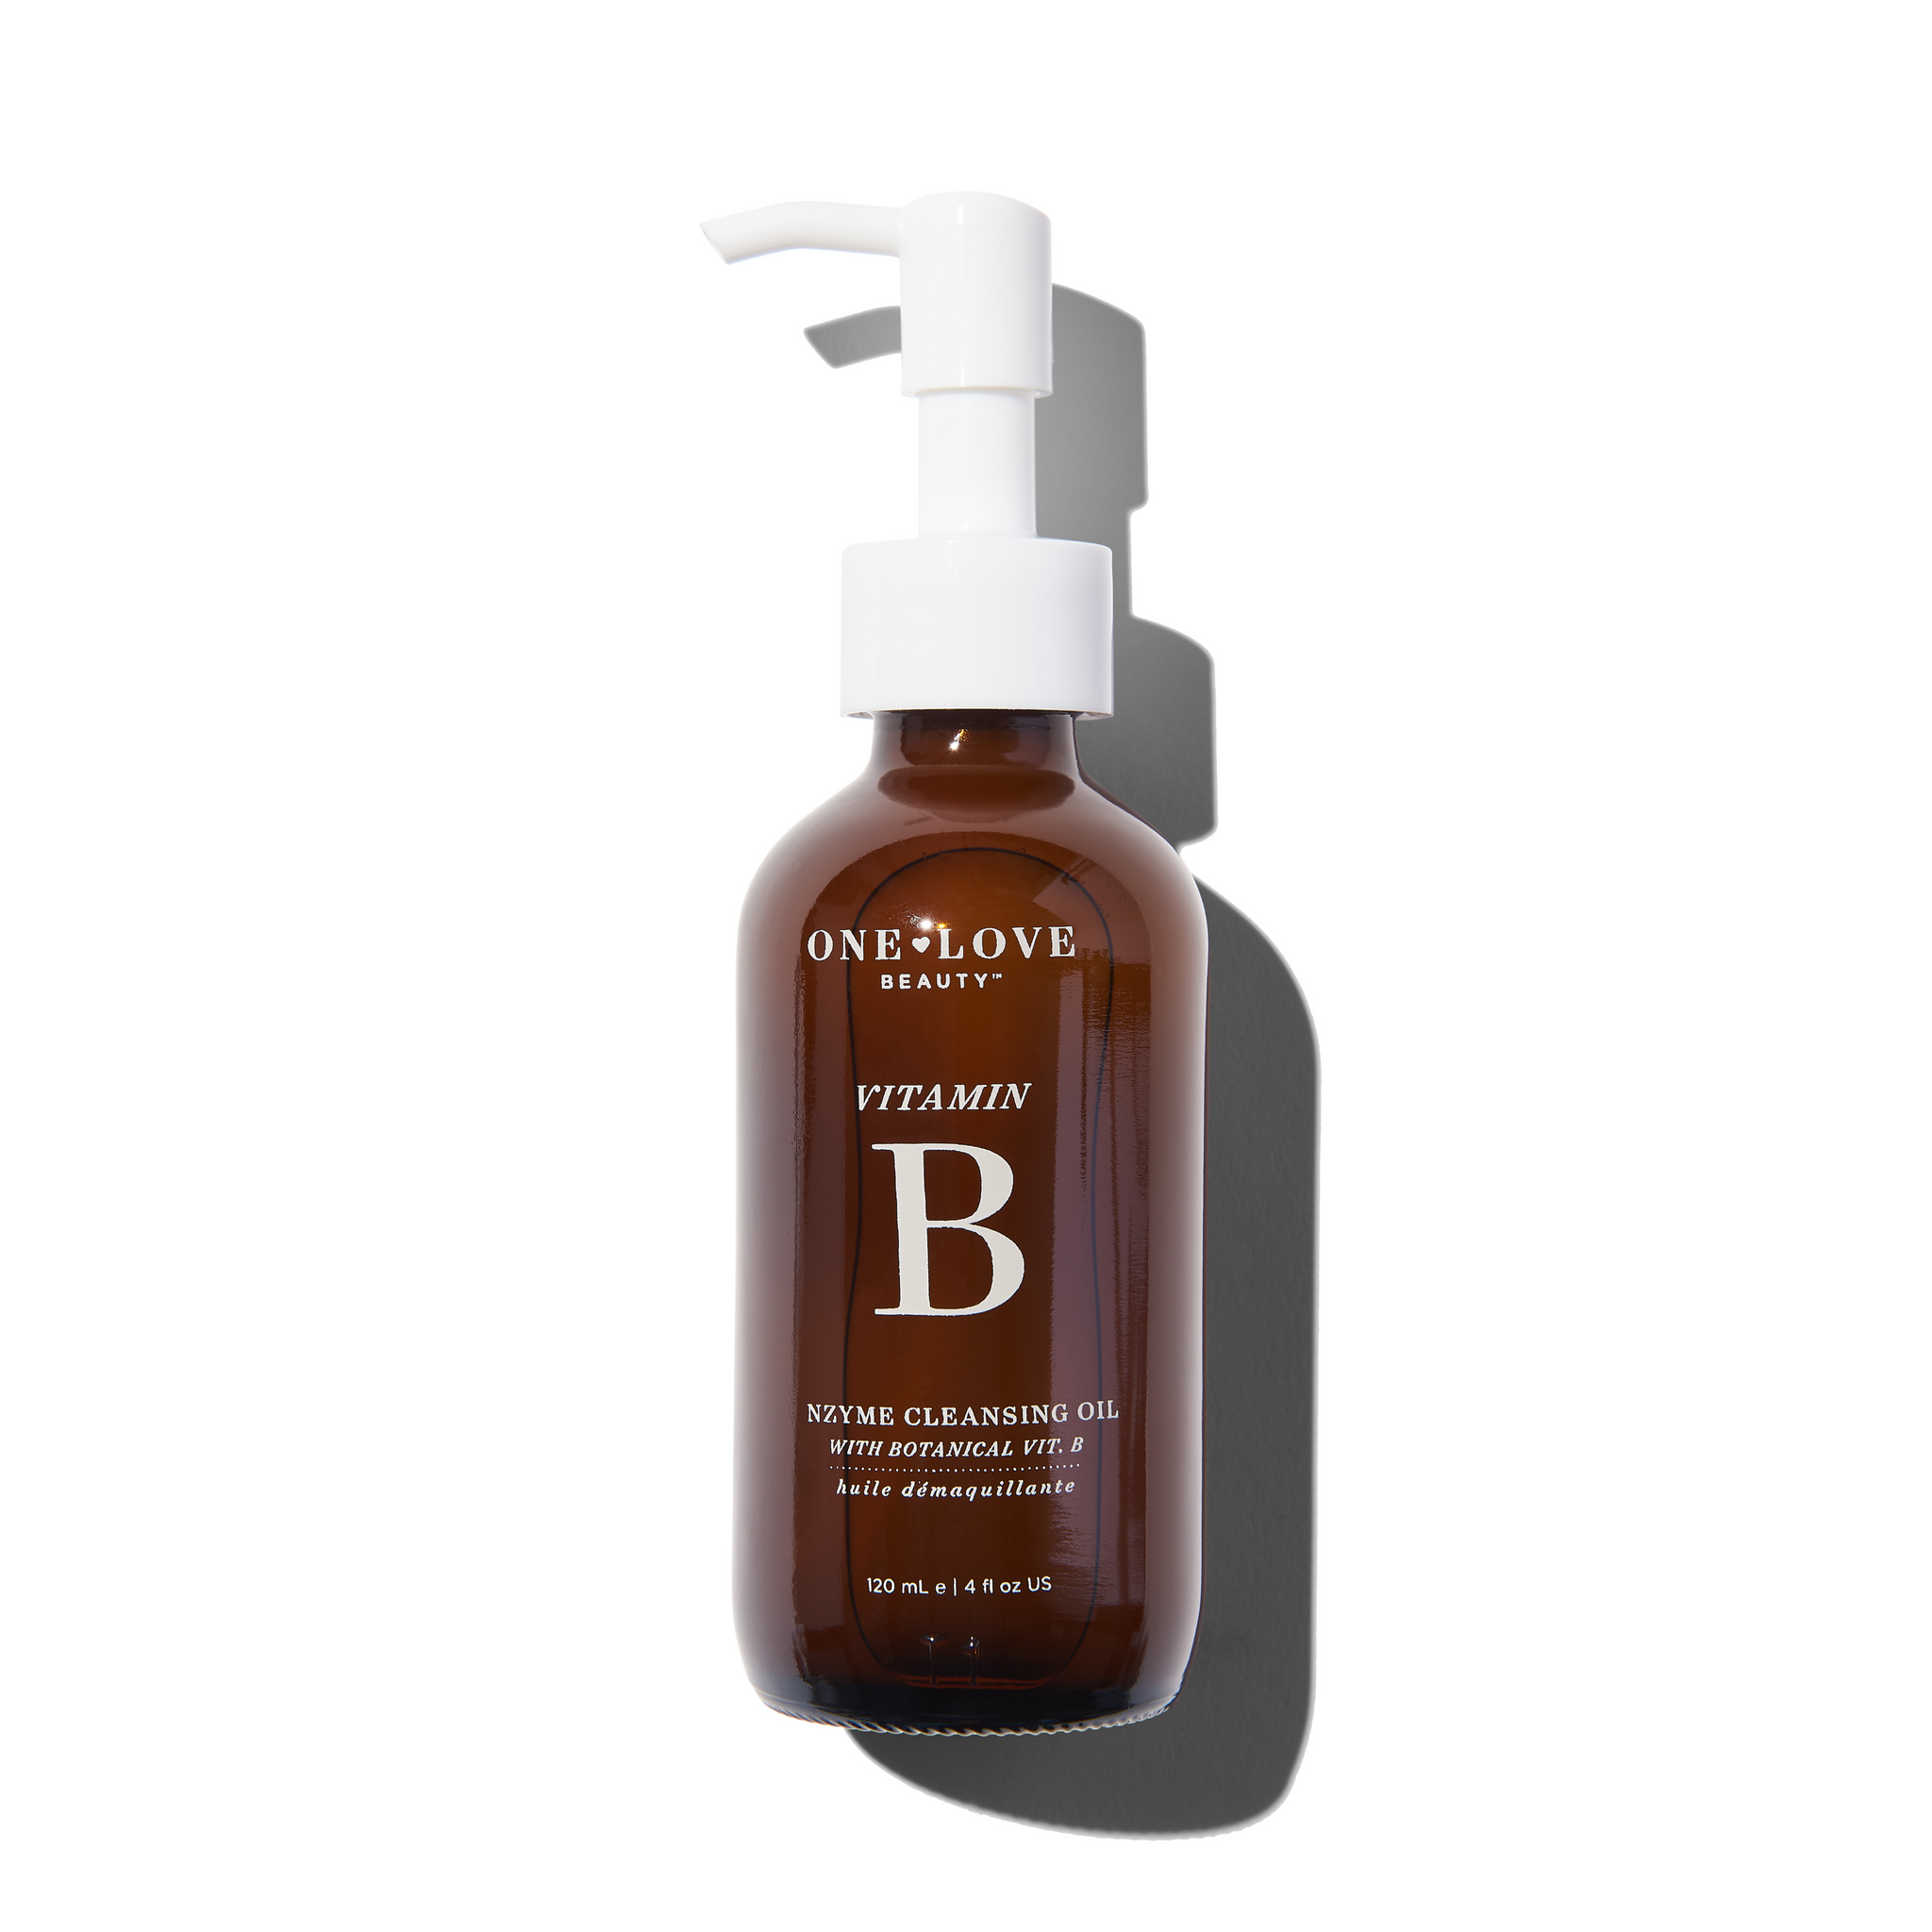 853036002704 - One Love Organics Vitamin B Cleansing Oil & Makeup Remover